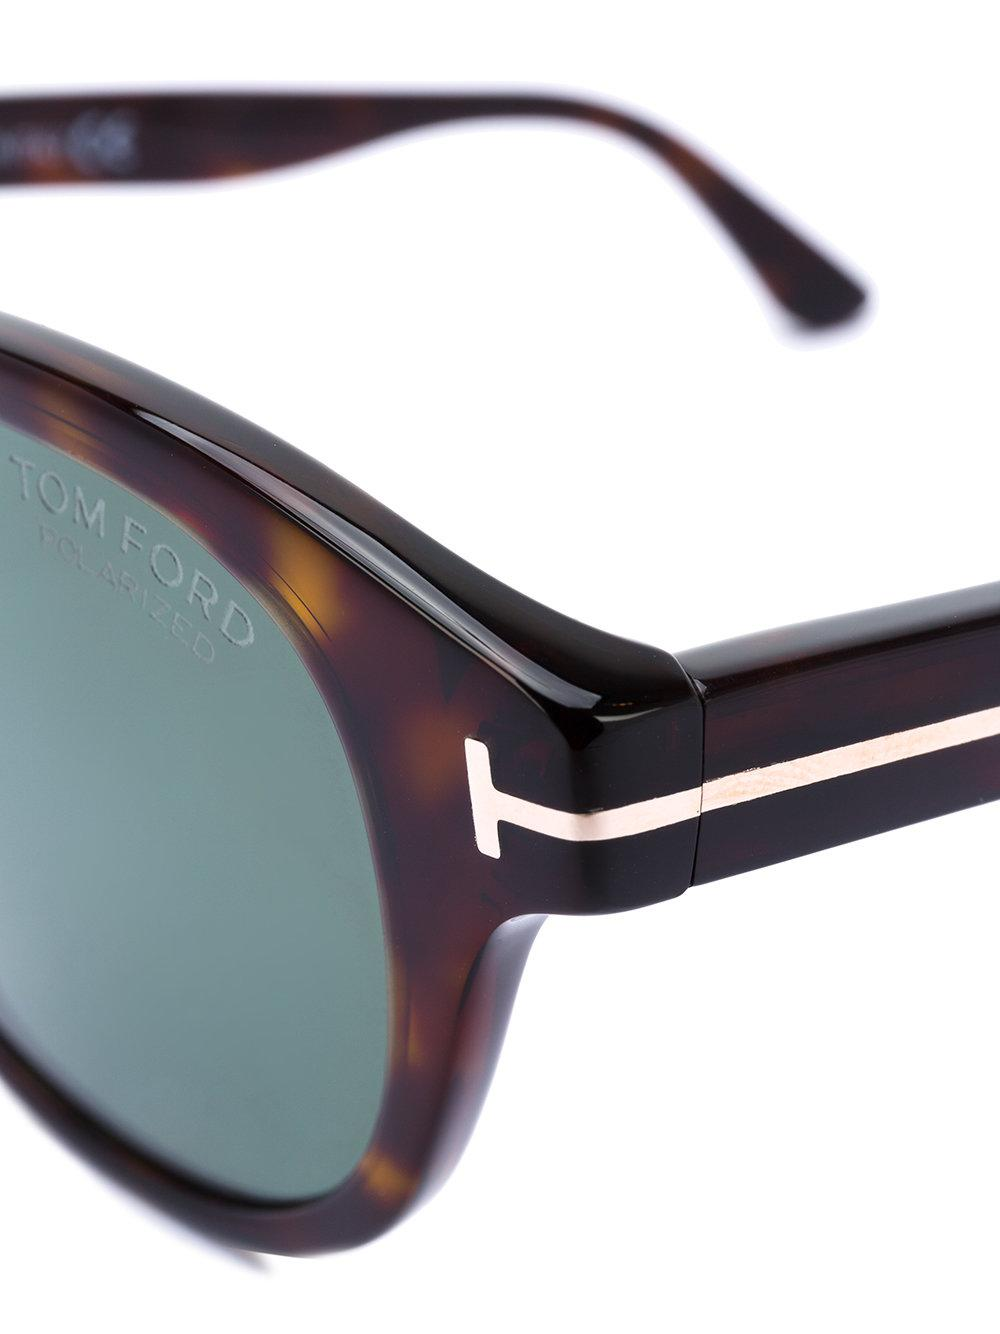 Tom Ford Von Bulow Sunglasses in Brown